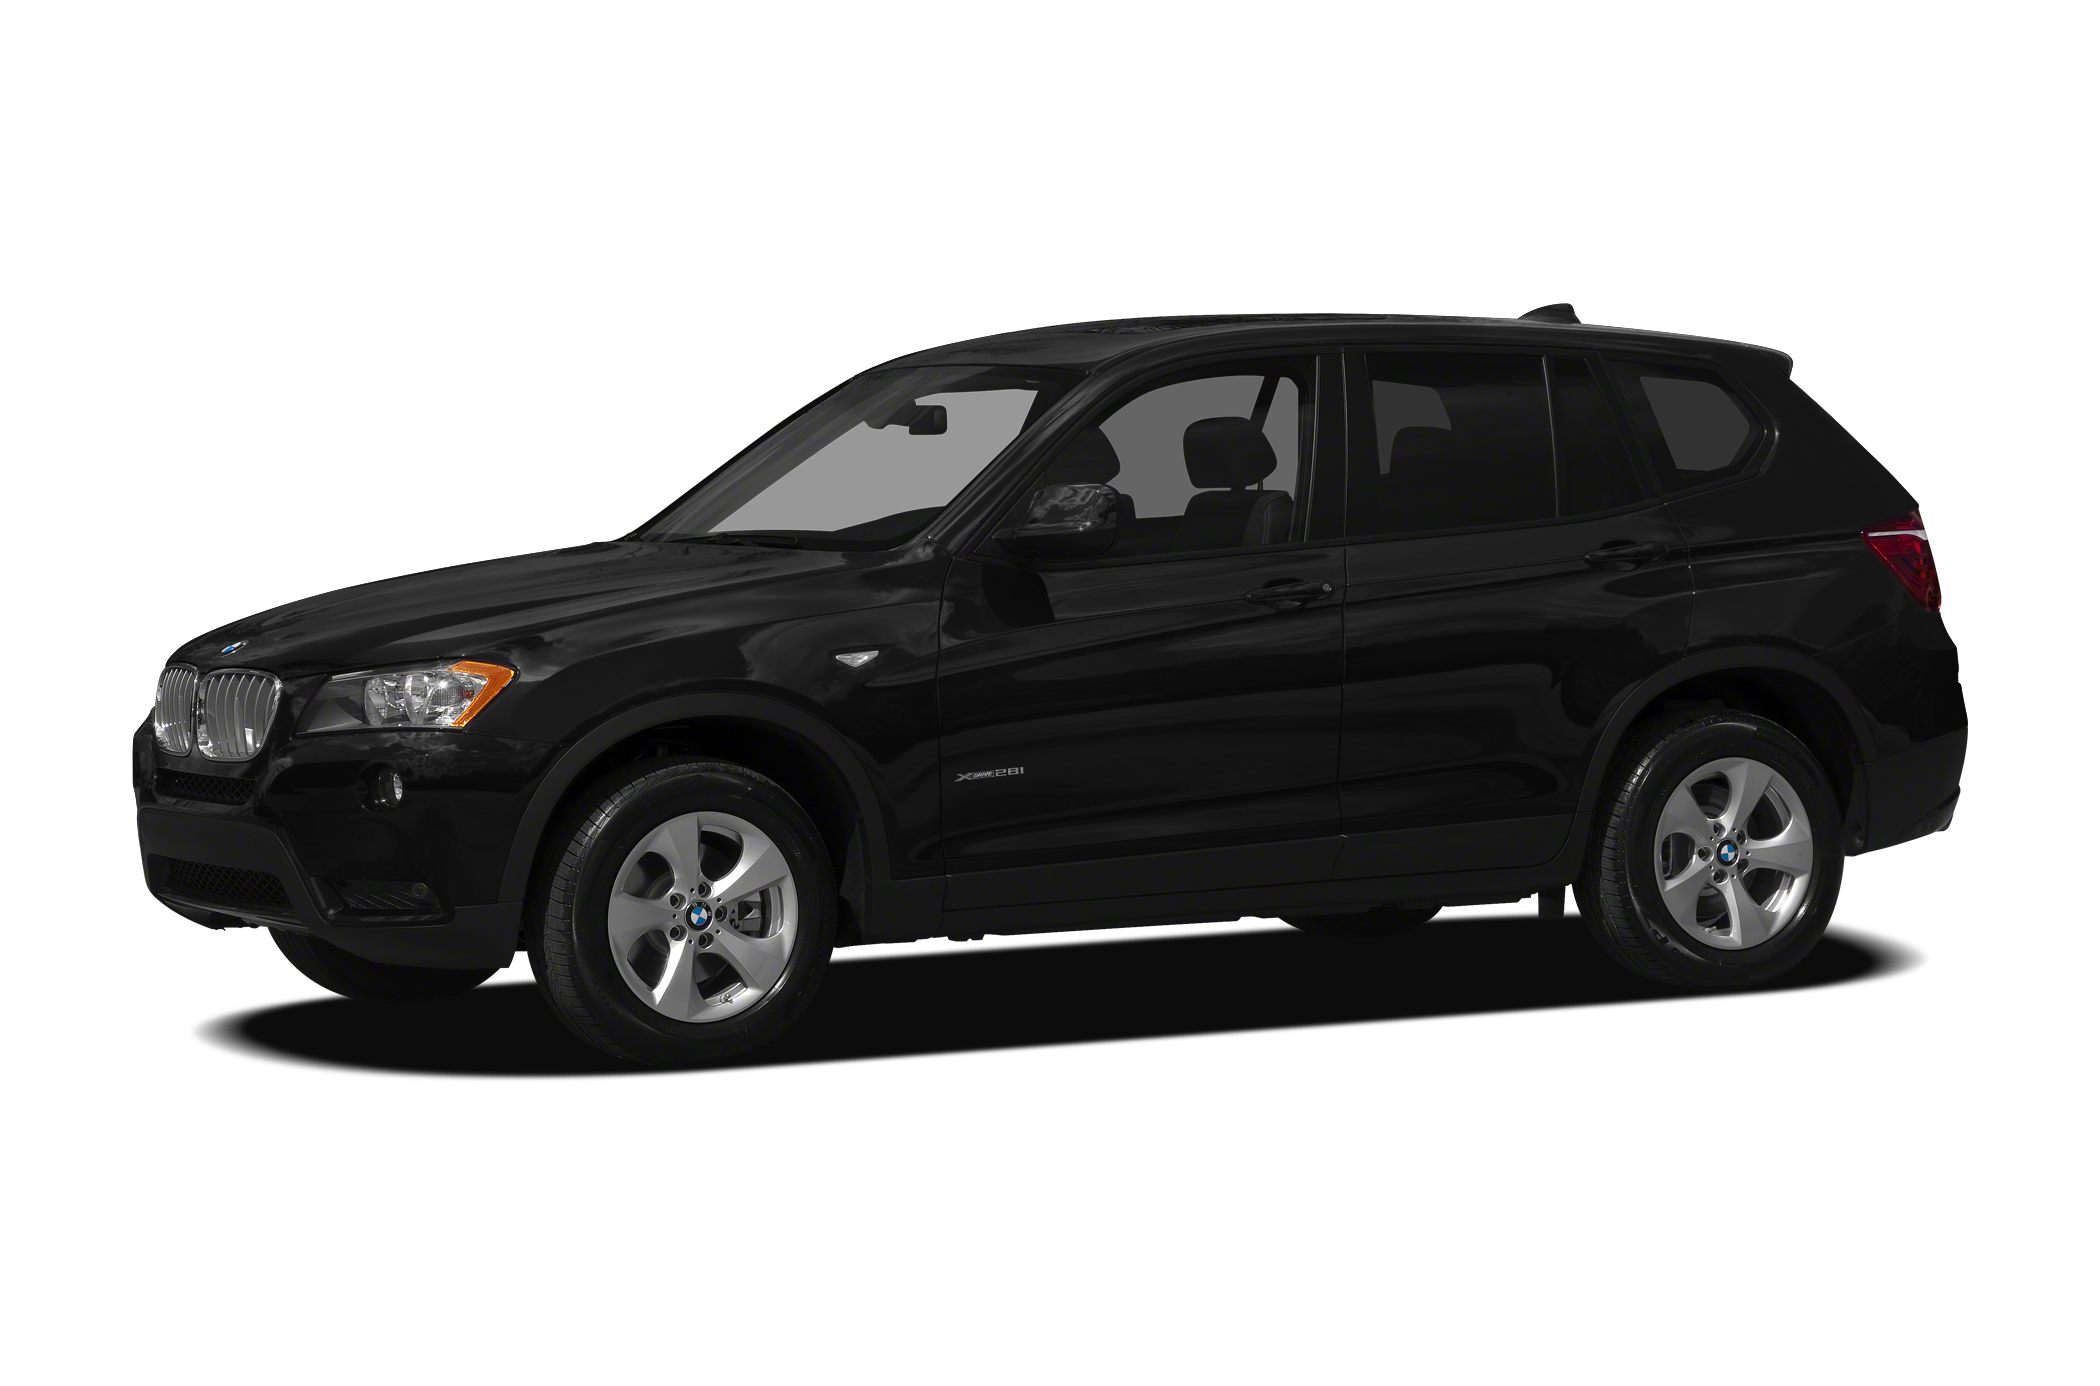 2012 BMW X3 xDrive28i PRICE DROP FROM 29977 EPA 25 MPG Hwy19 MPG City CARFAX 1-Owner 28i trim